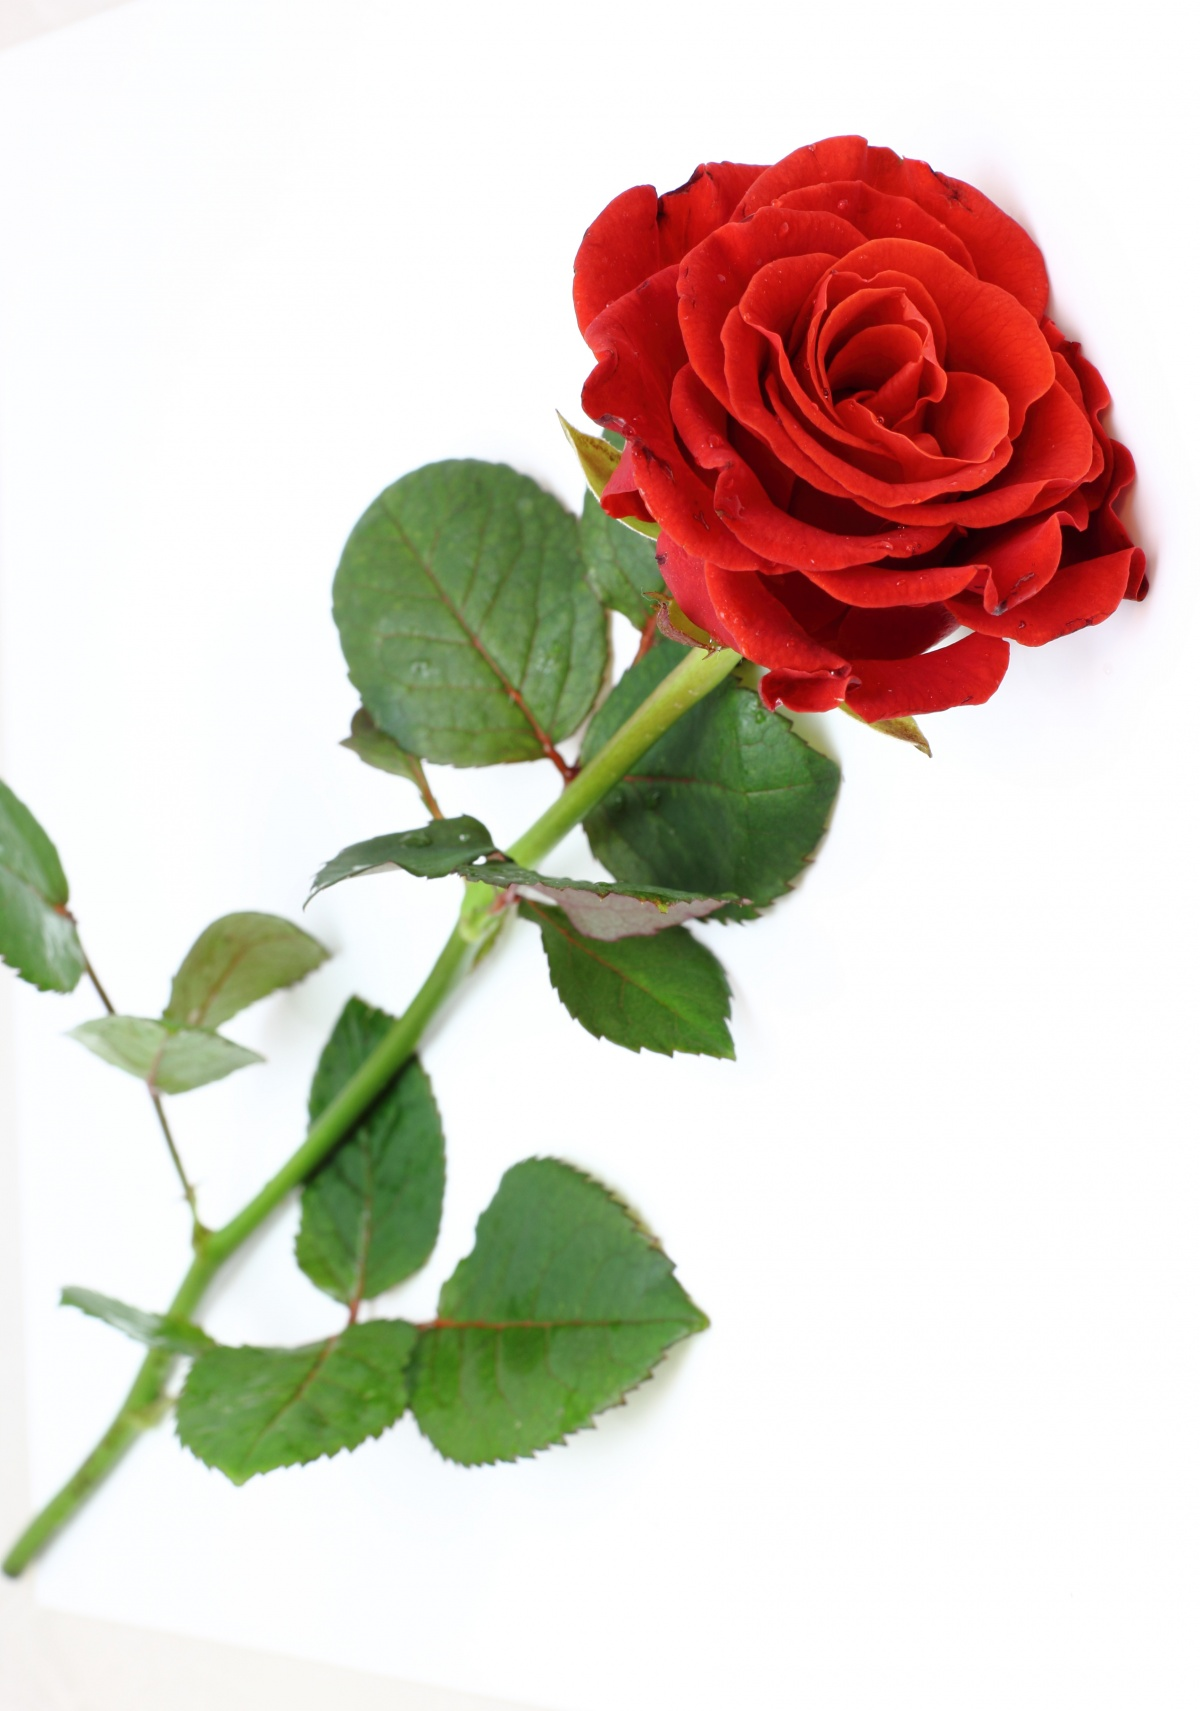 One Red Rose on a Stem